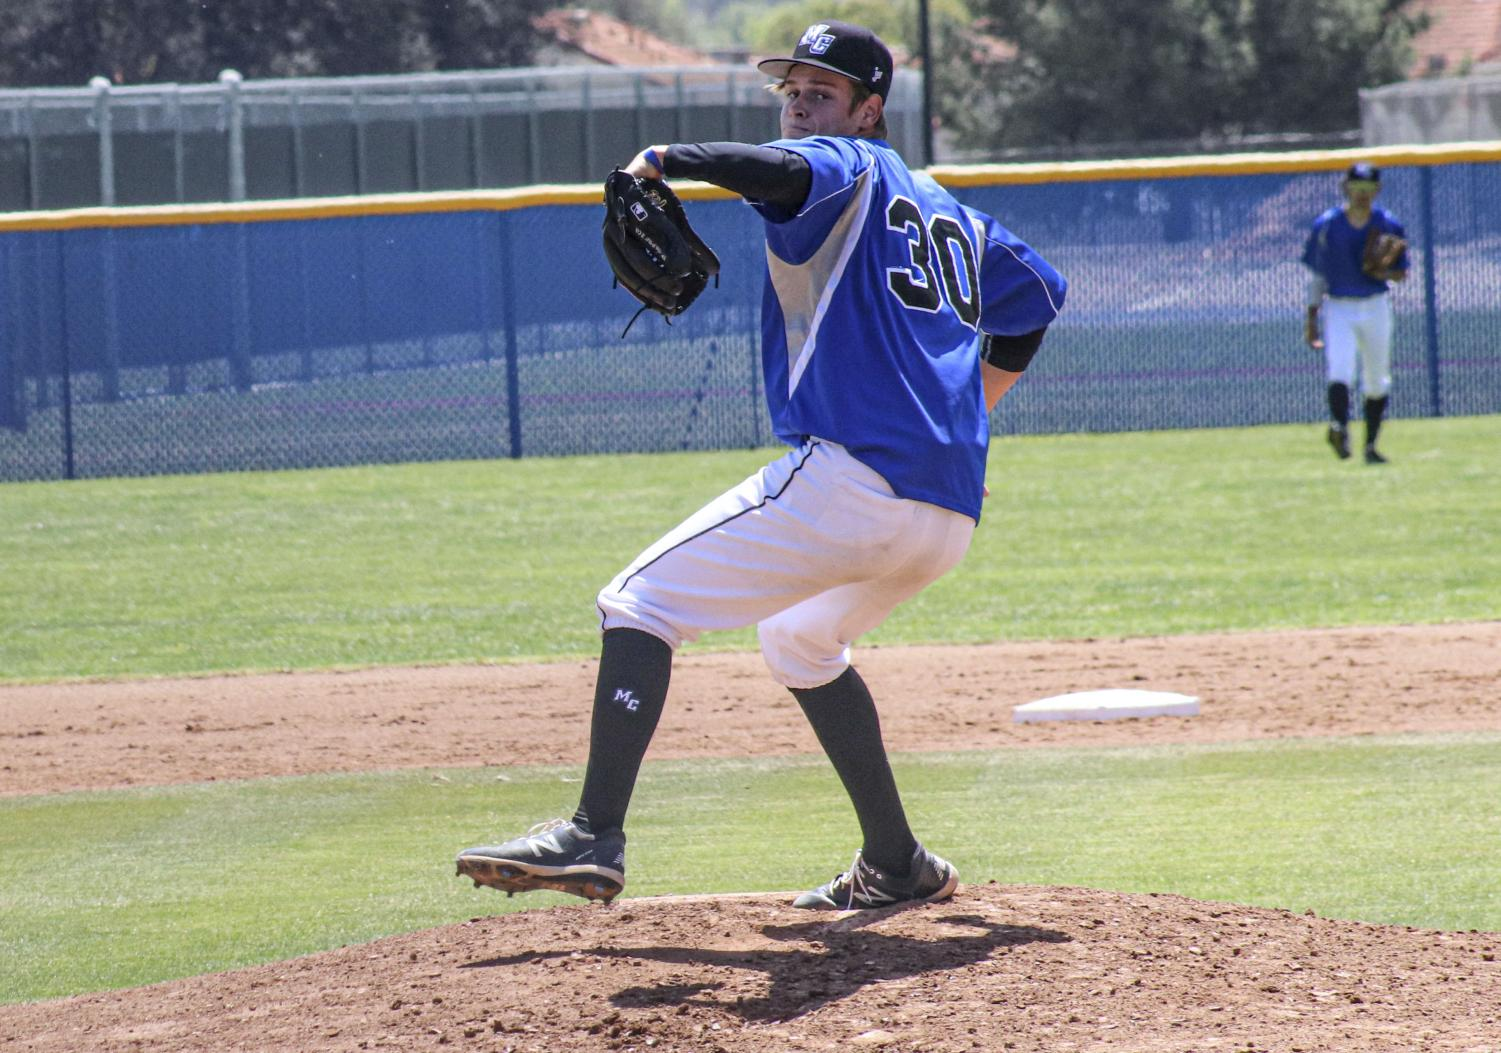 Freshman pitcher Garret Yawn winds up in his first start for the Moorpark Raiders against the Ventura Pirates on April 15. Yawn finished with two earned runs in four innings of play.